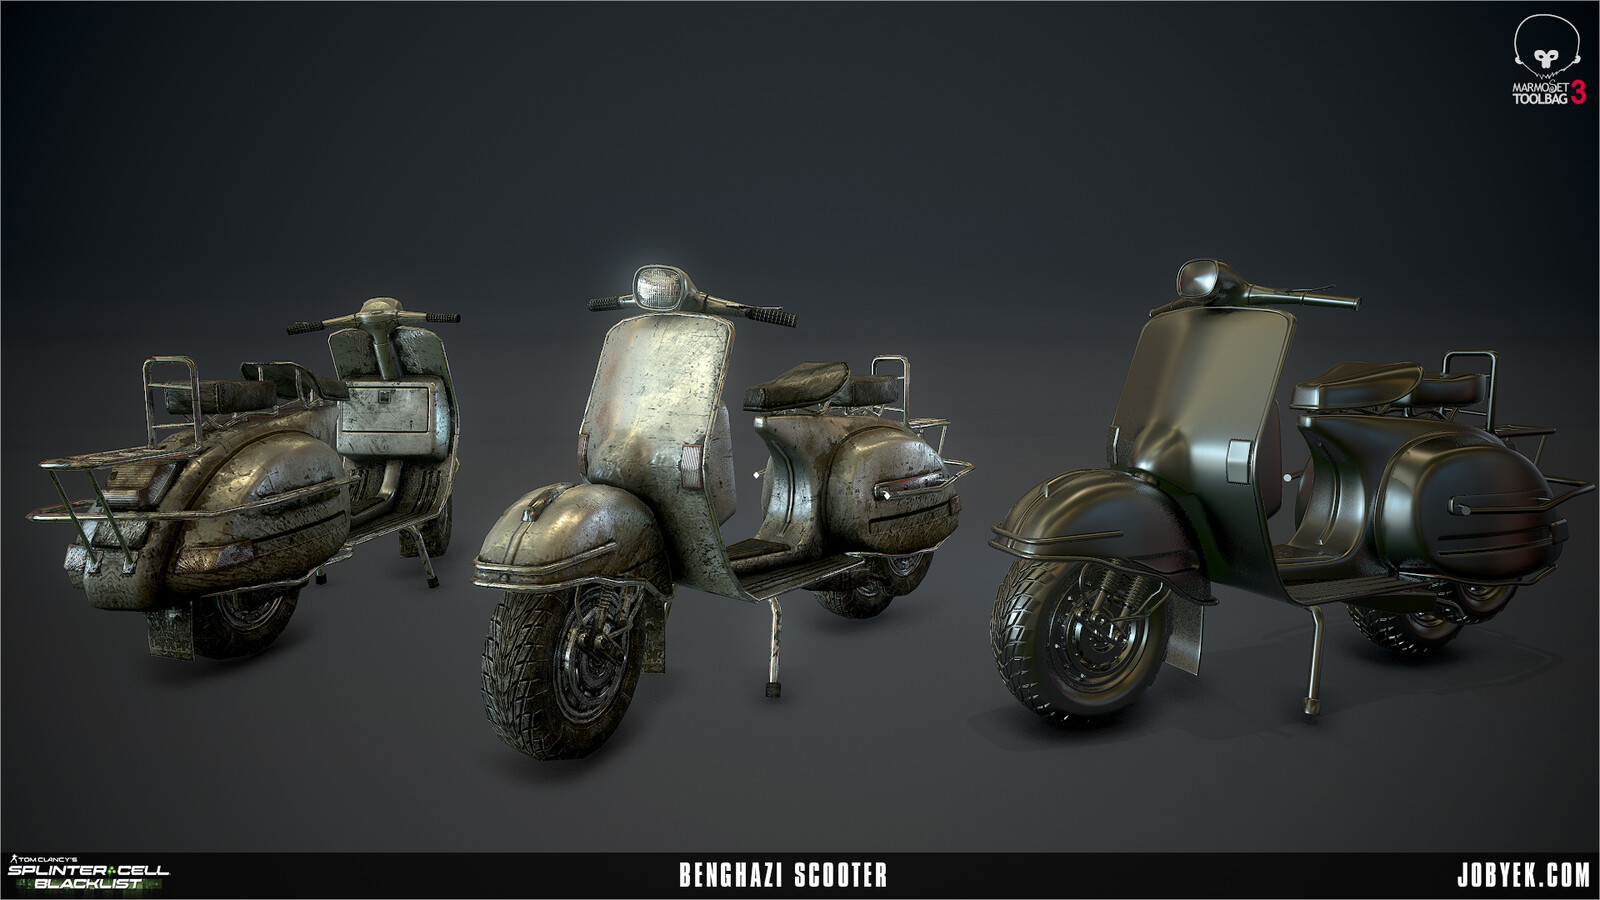 Scooter render